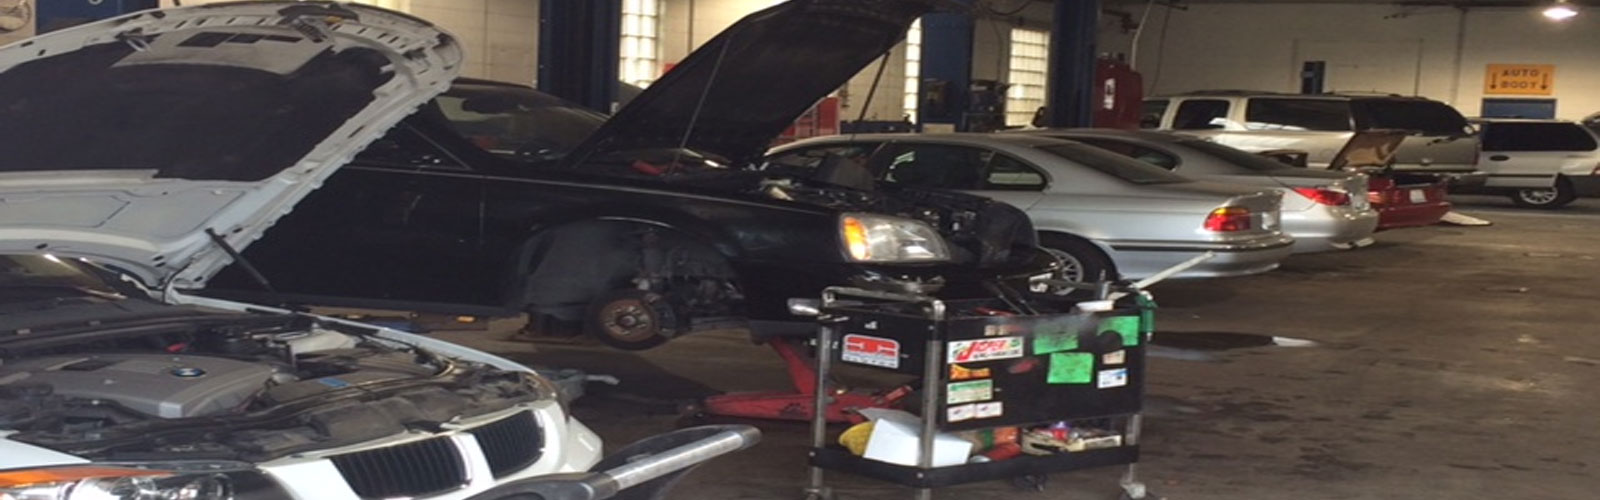 We're a full-service preventative maintenance and auto repair center